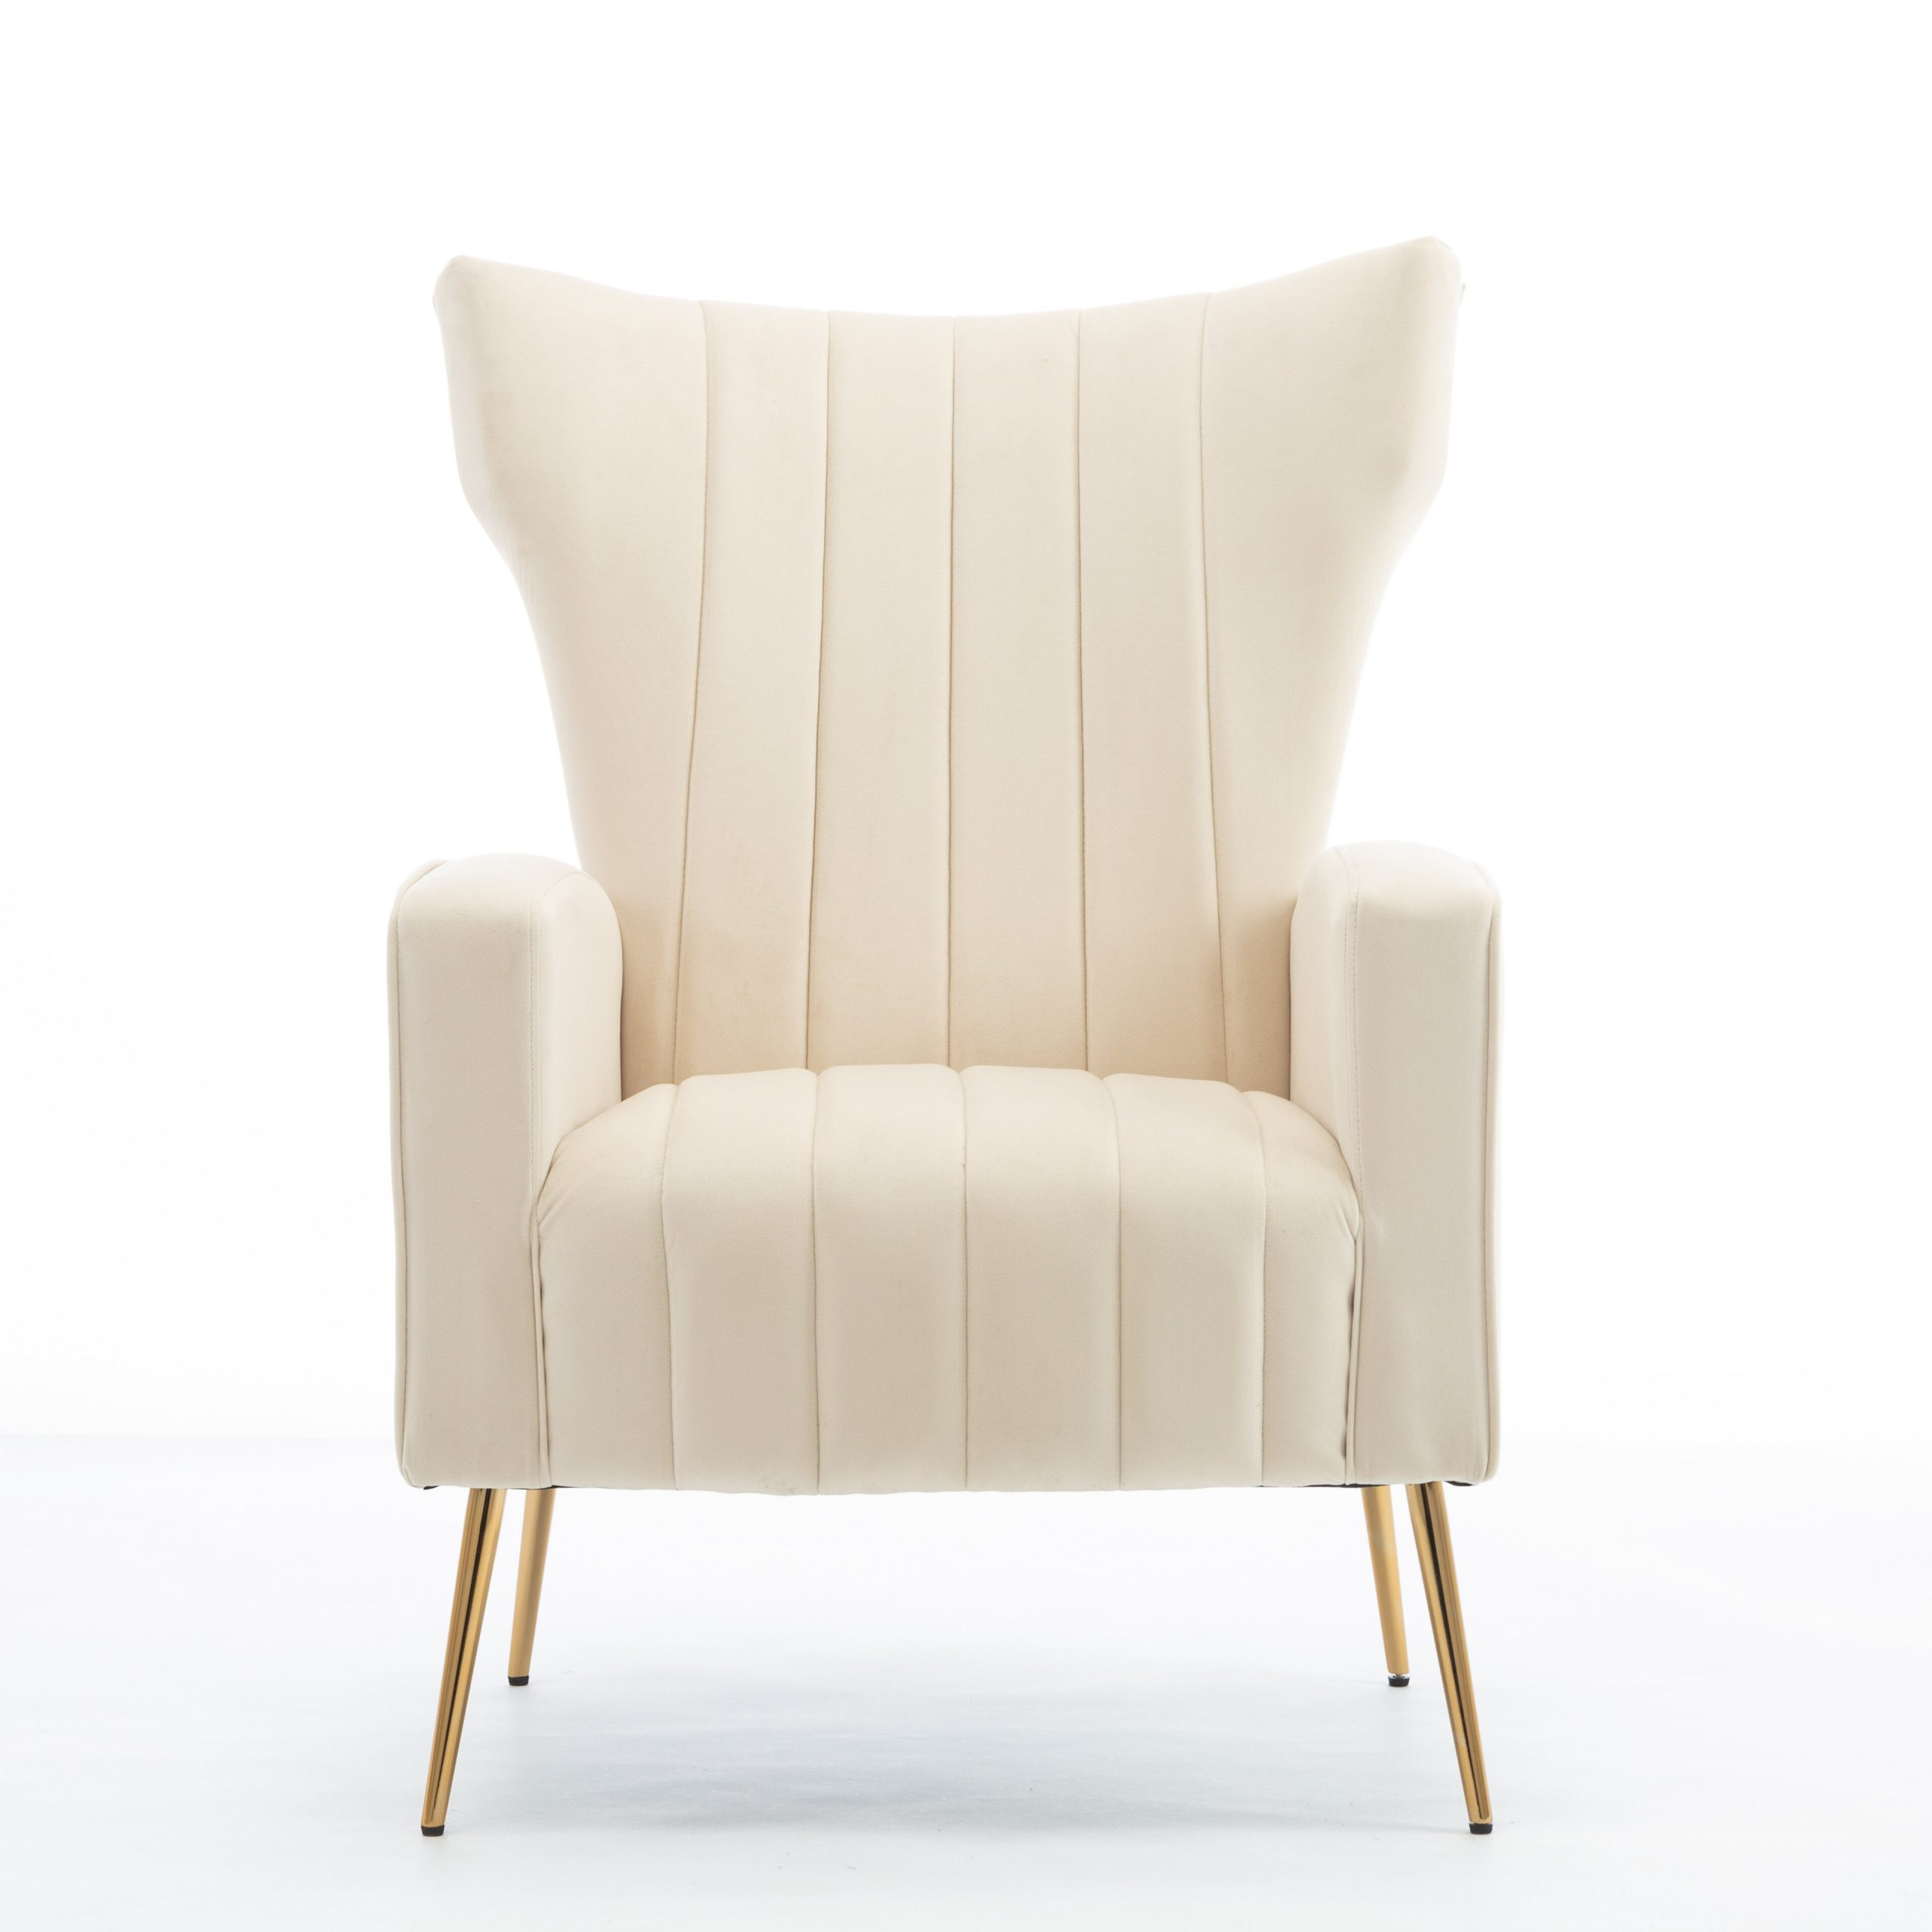 Artemis Knitted Armchair Inside Artemi Barrel Chair And Ottoman Sets (View 13 of 15)